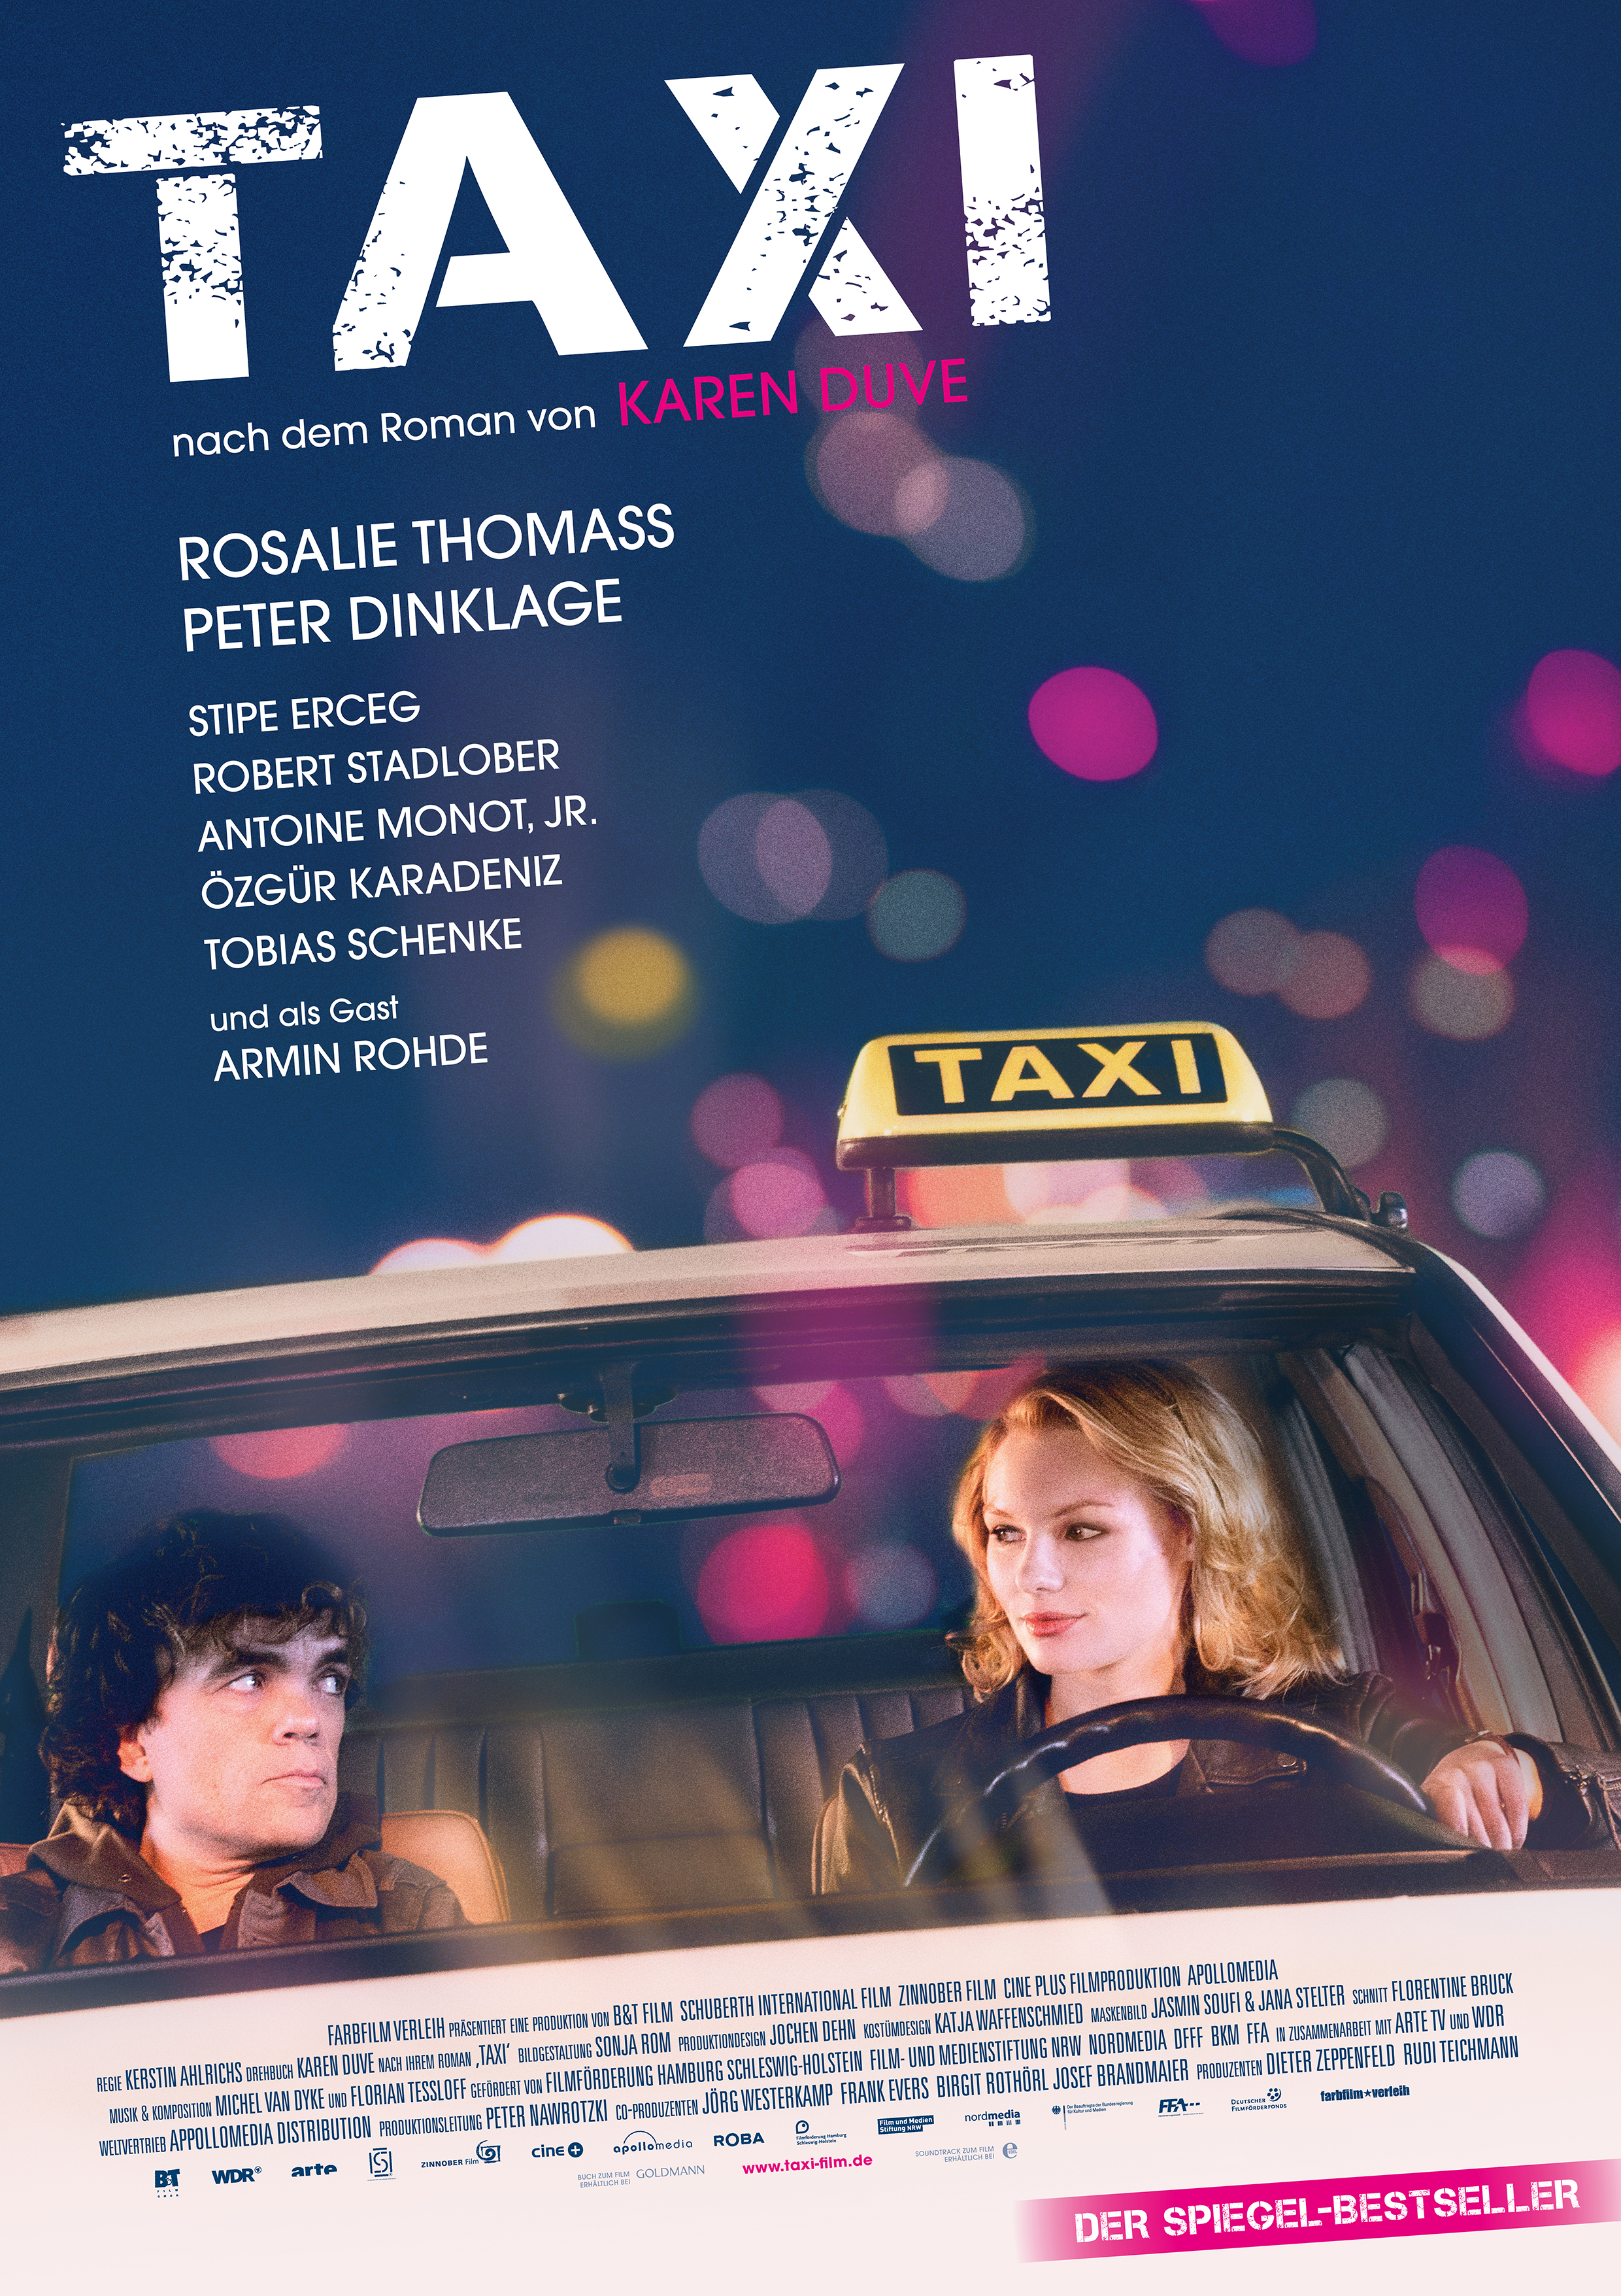 TAXI_Poster_300.jpg